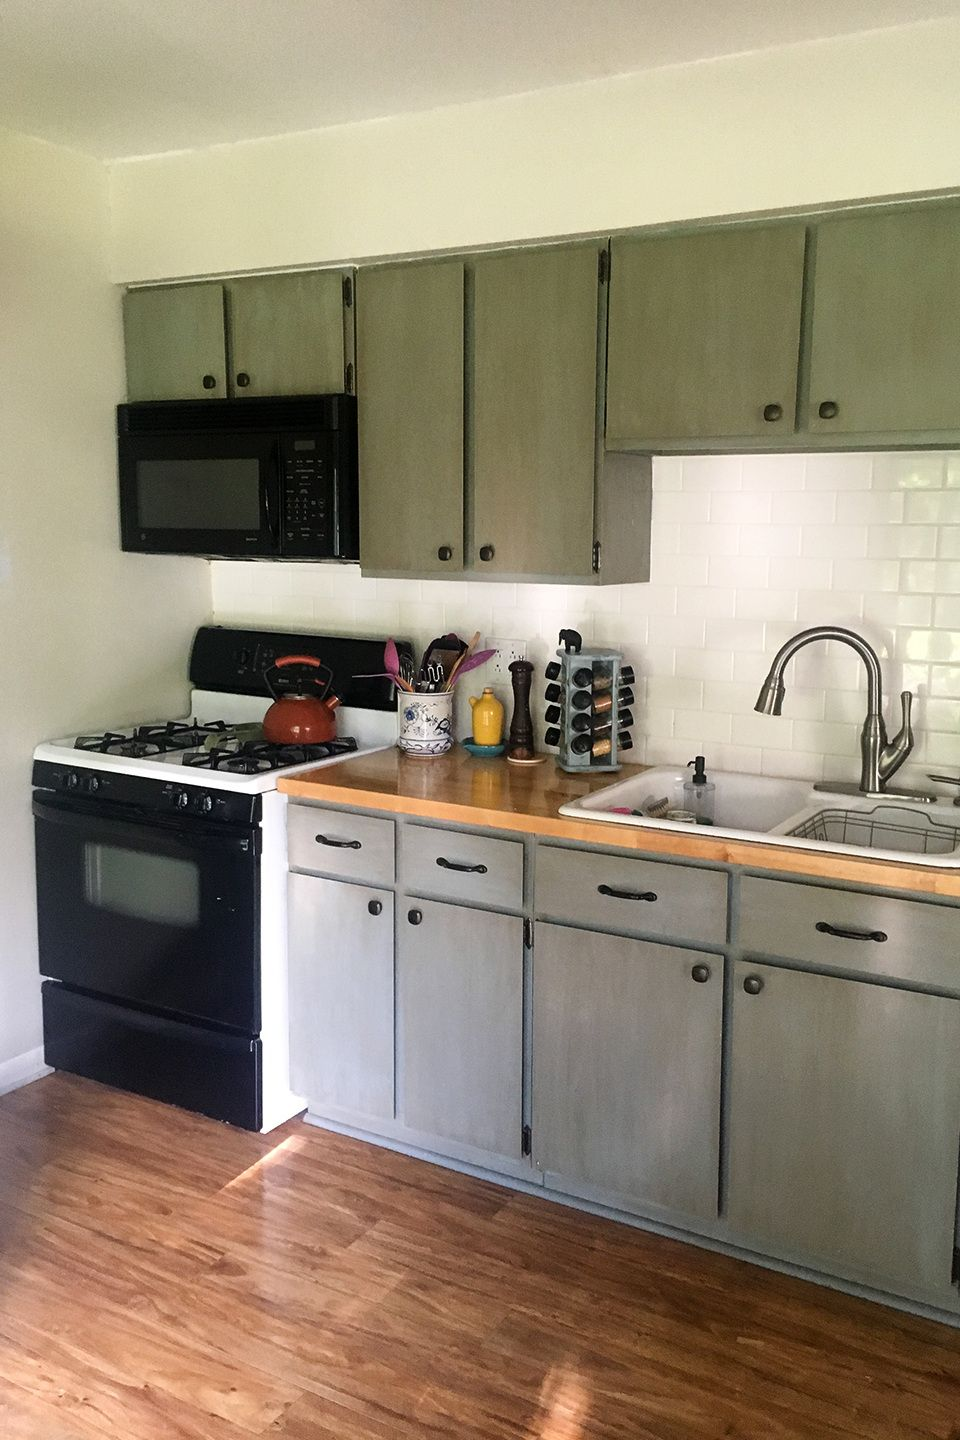 Kitchen Cabinet Renovation Cost 2020 In 2020 Cost Of Kitchen Cabinets Replacing Kitchen Cabinets Cheap Kitchen Cabinets